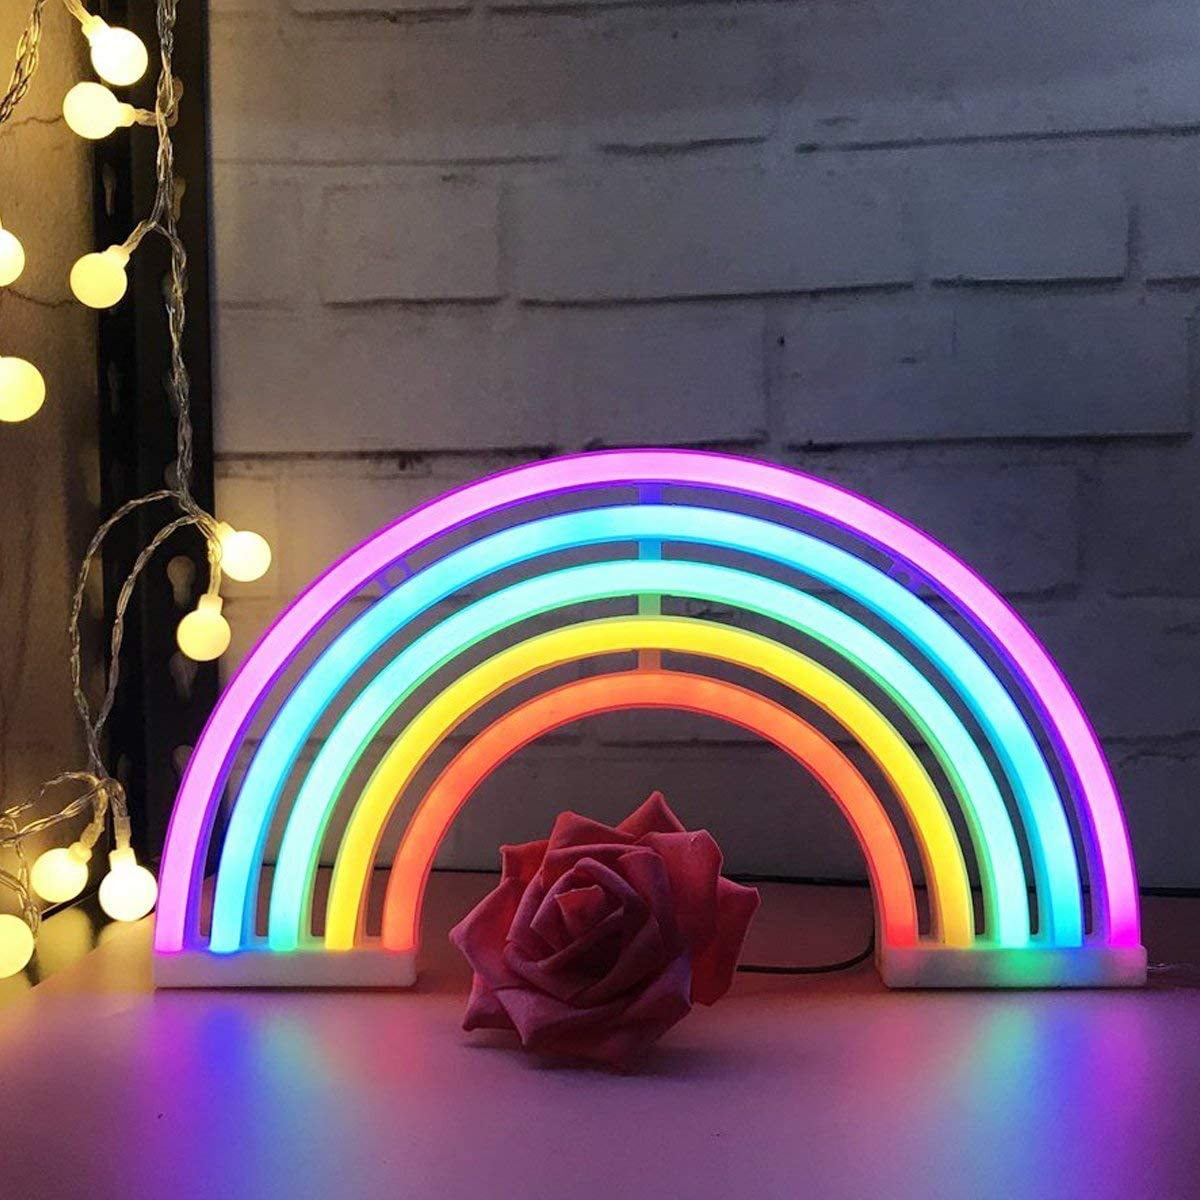 Rainbow LED Light Rainbow Neon Signs Rainbow Decor Kids Gifts,Battery or USB Operated Table LED Night Lights for Christmas,Girls Bedroom,Living Room,Party,Wall Decorations(Rainbow)